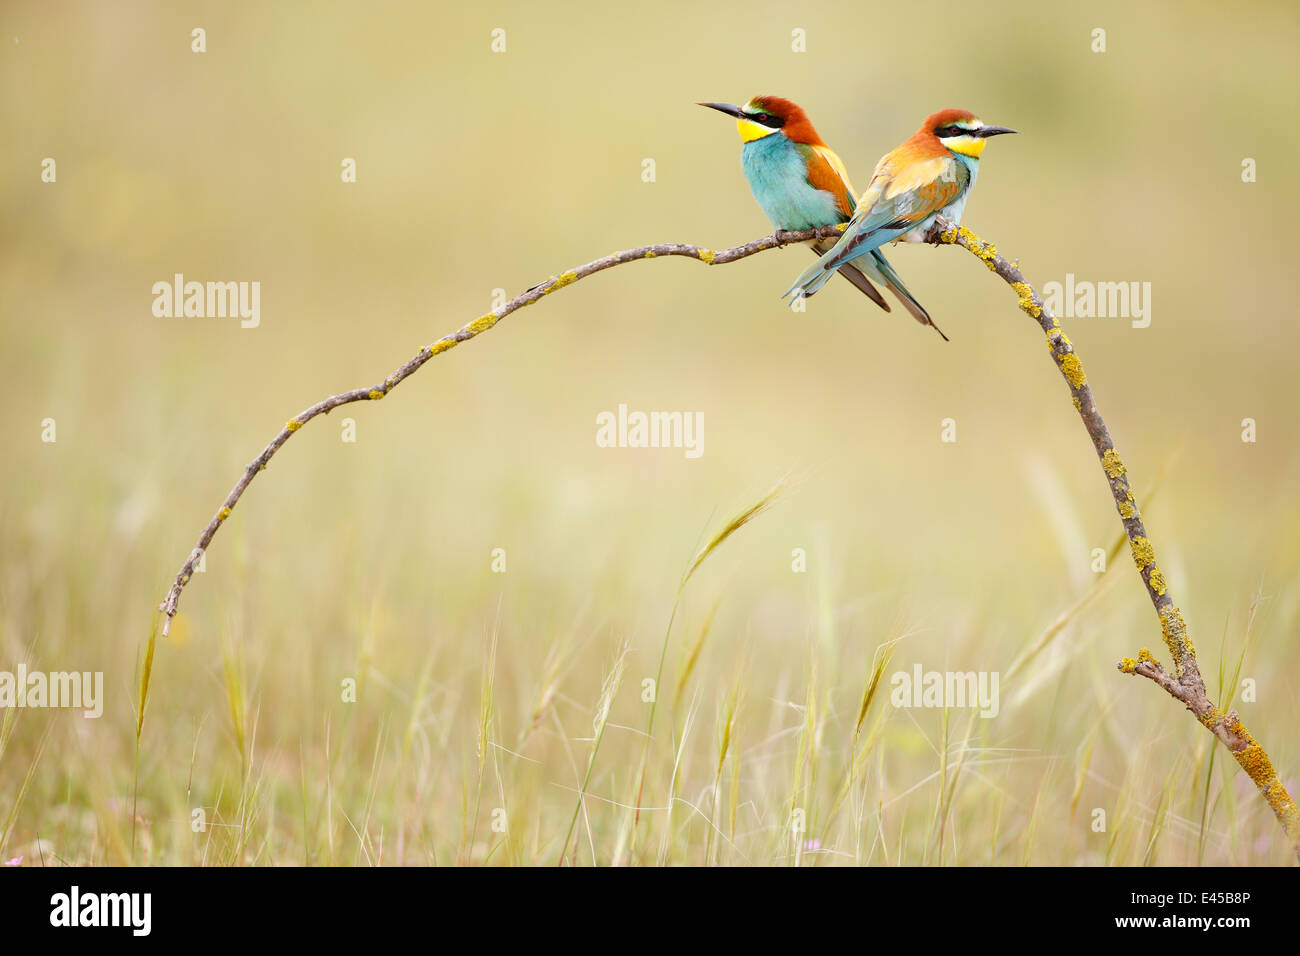 European bee eaters (Merops apiaster) on branch in meadow. Seville, Spain - Stock Image